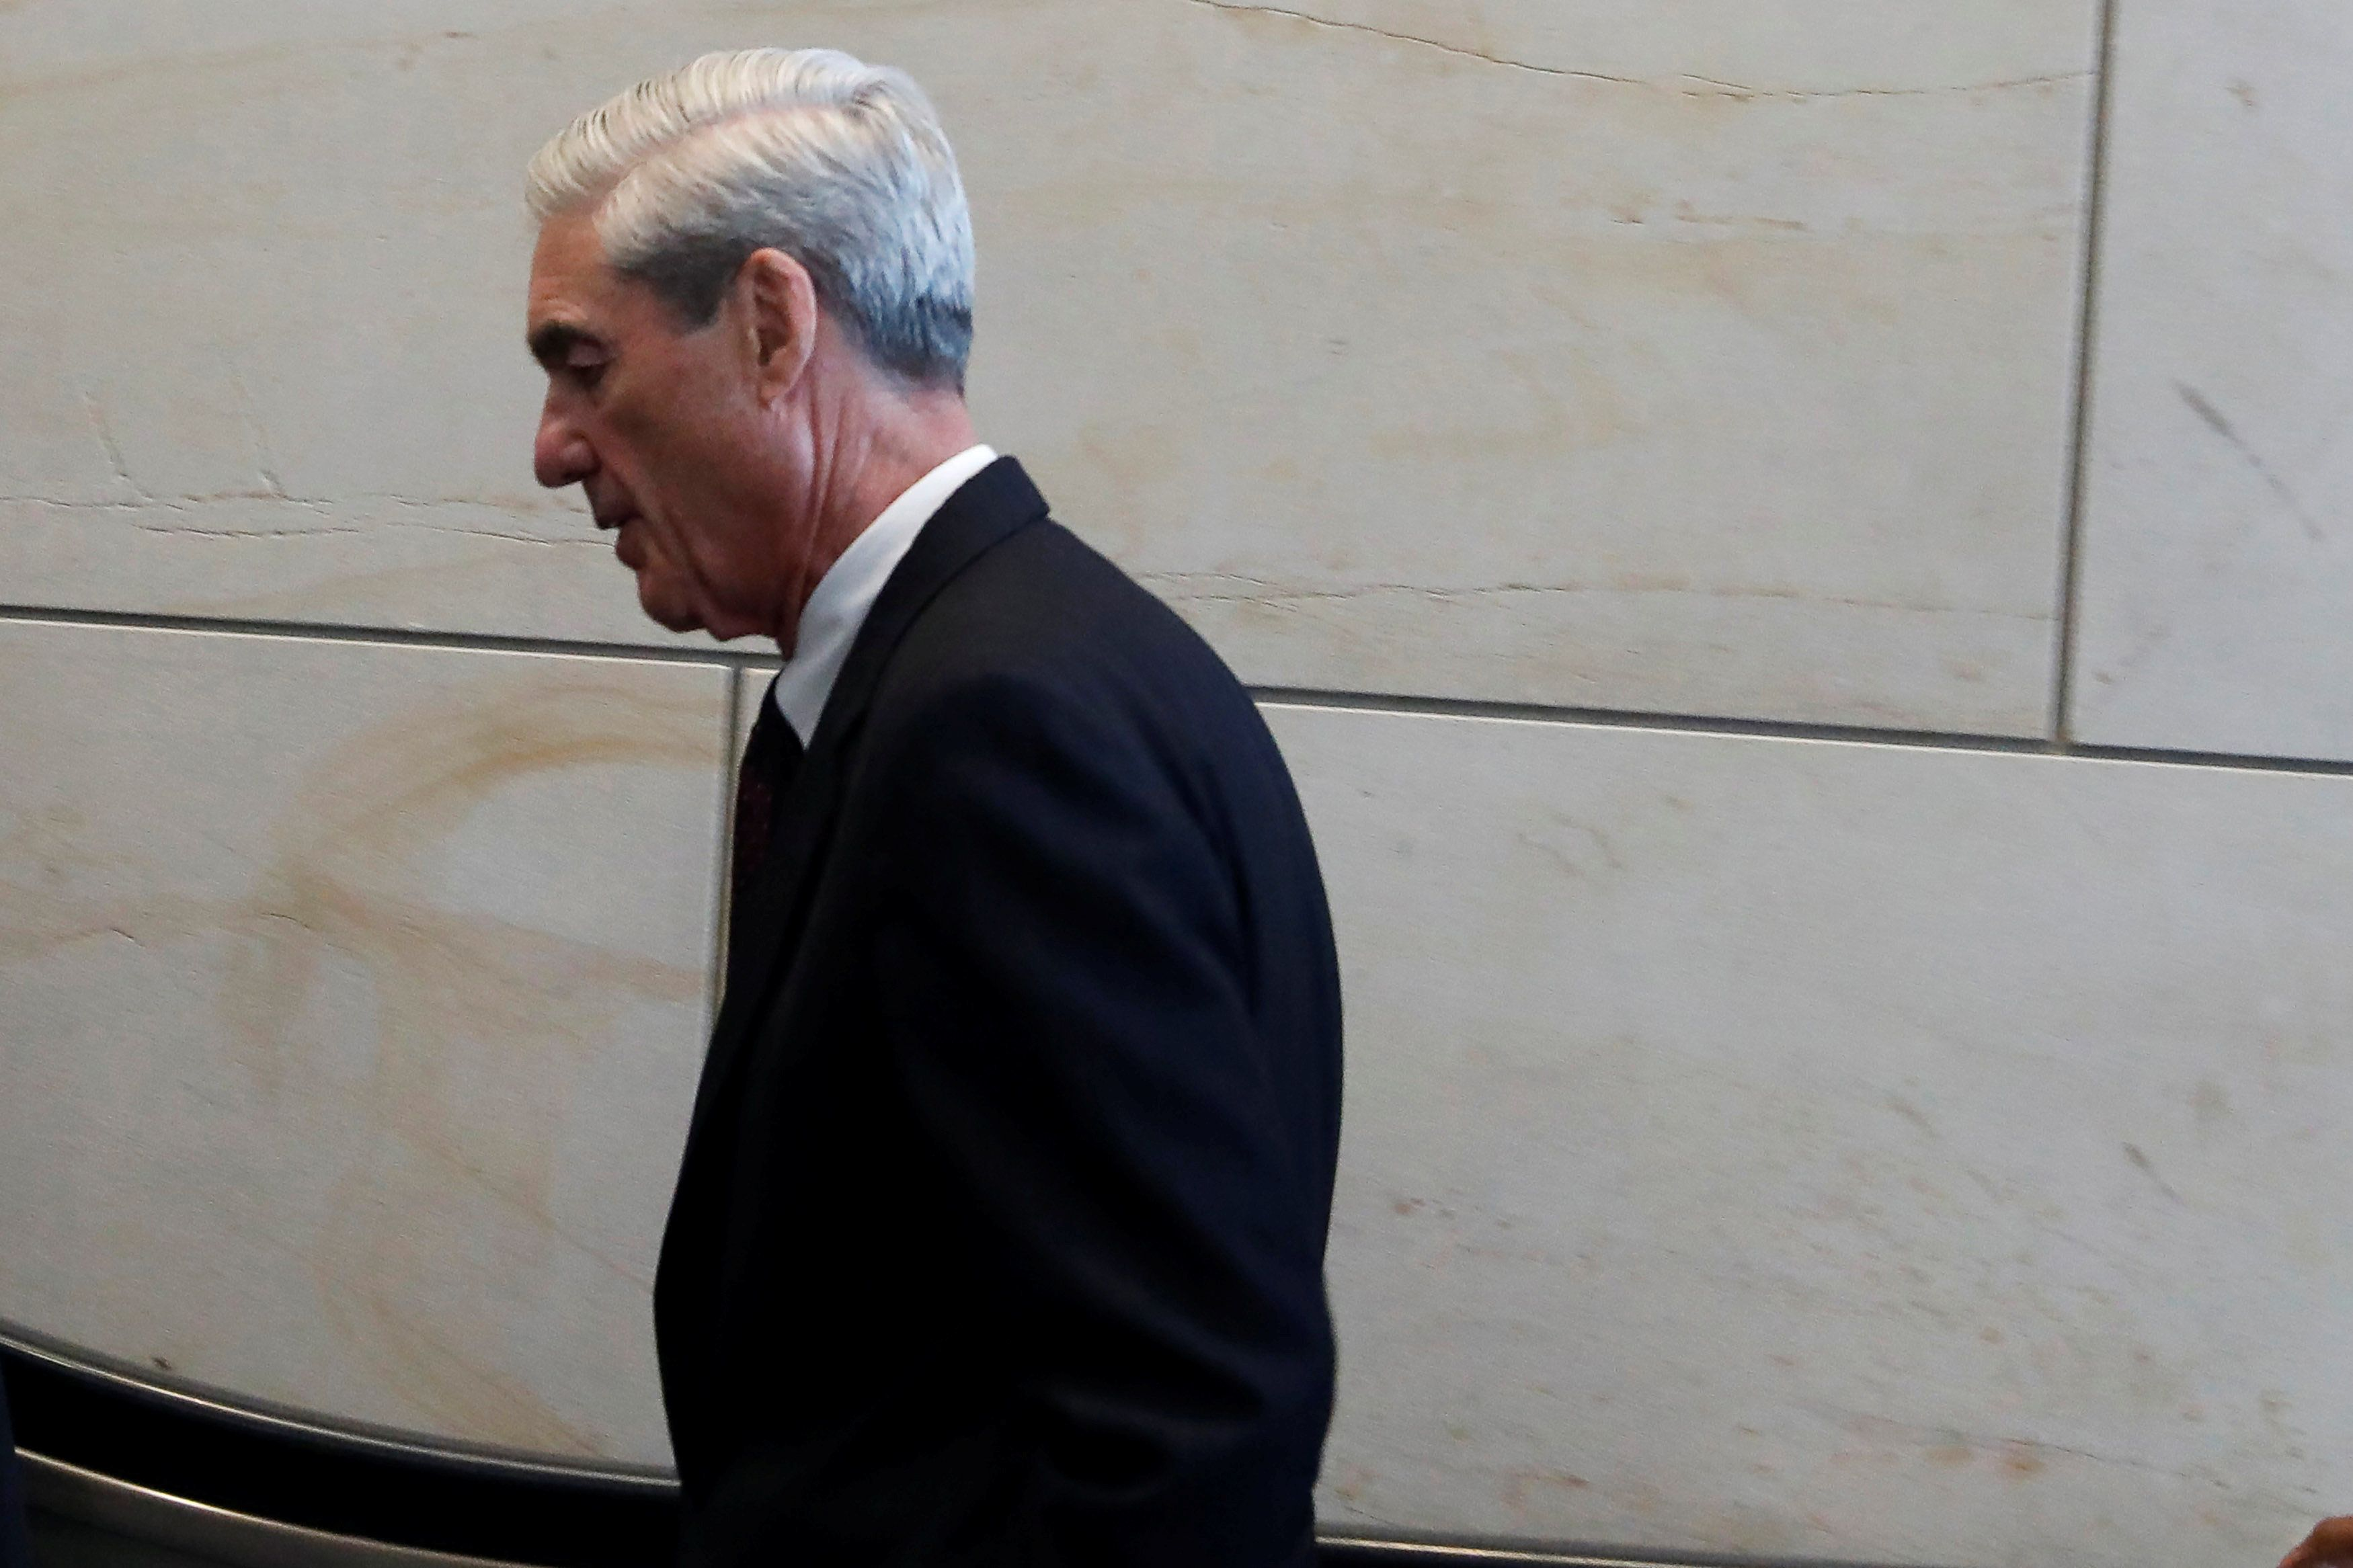 Special Counsel Robert Mueller is investigating some explosive allegationscompiled by a former British spy.